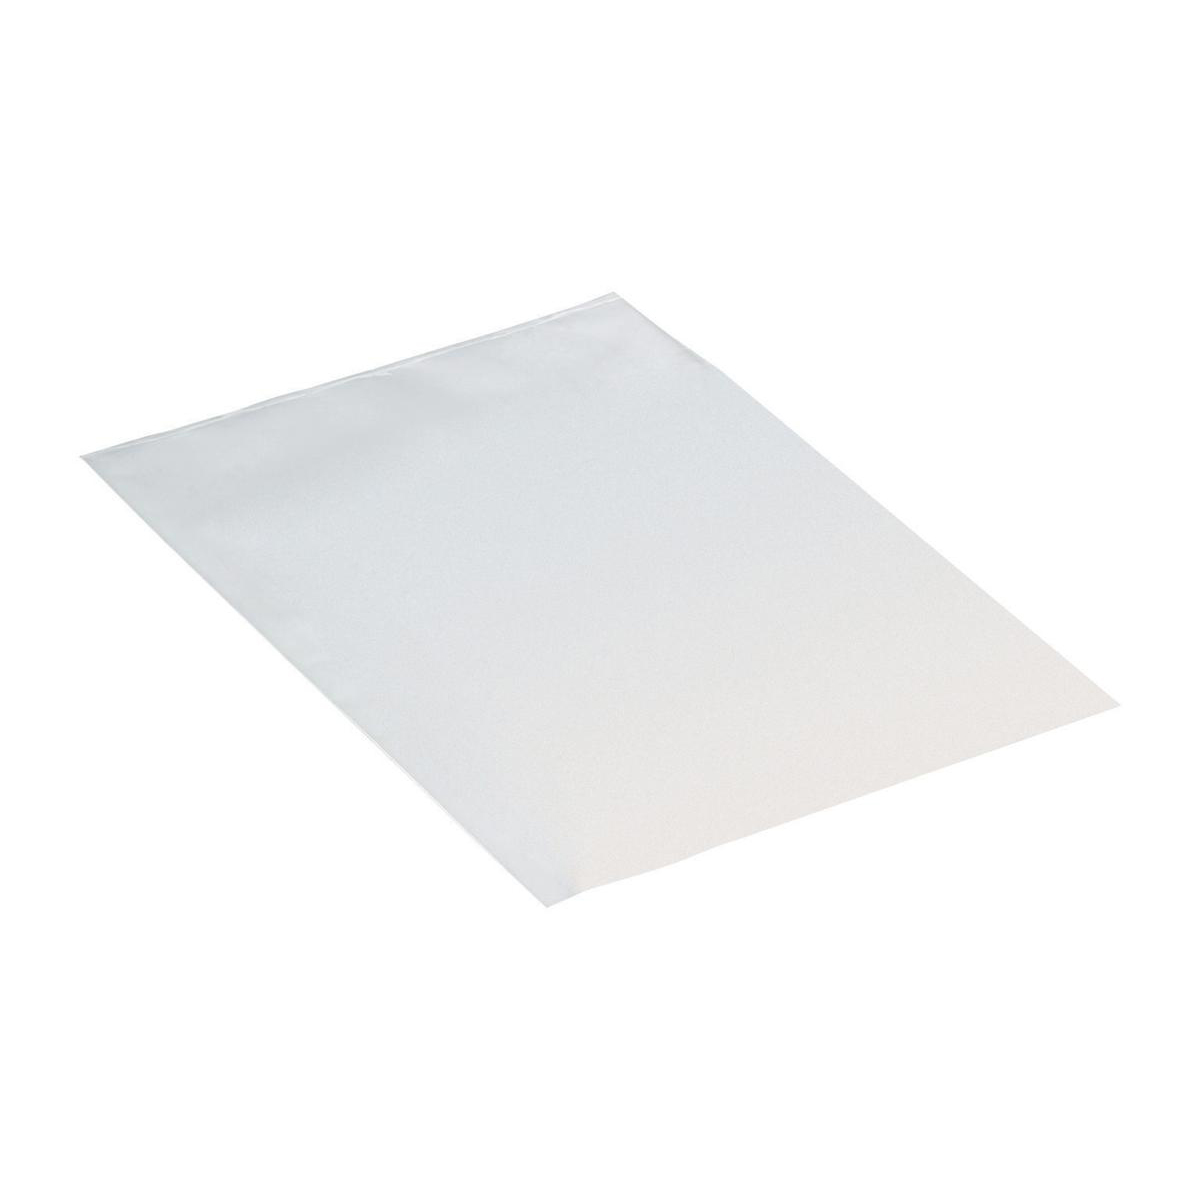 Polythene Bags 305x457mm 100 Micron Clear Pack 250